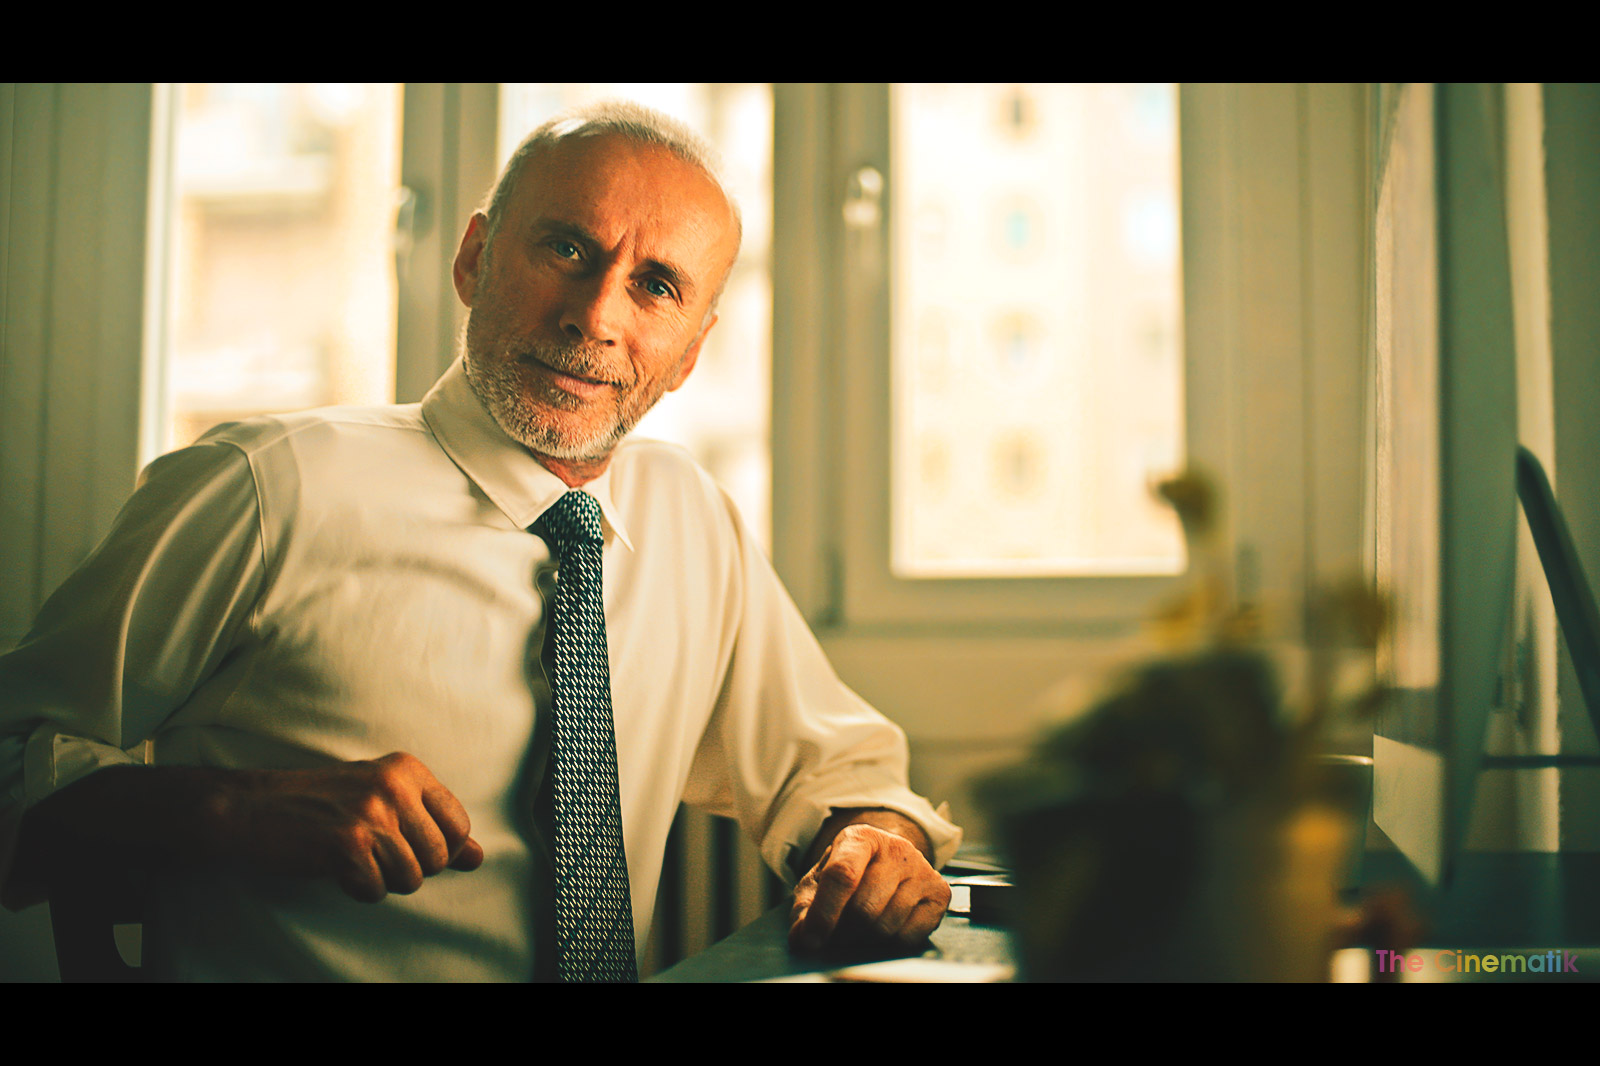 Old executive at his desk Cinematic corporate photography by Kamal Lahmadi/THE CINEMATIK